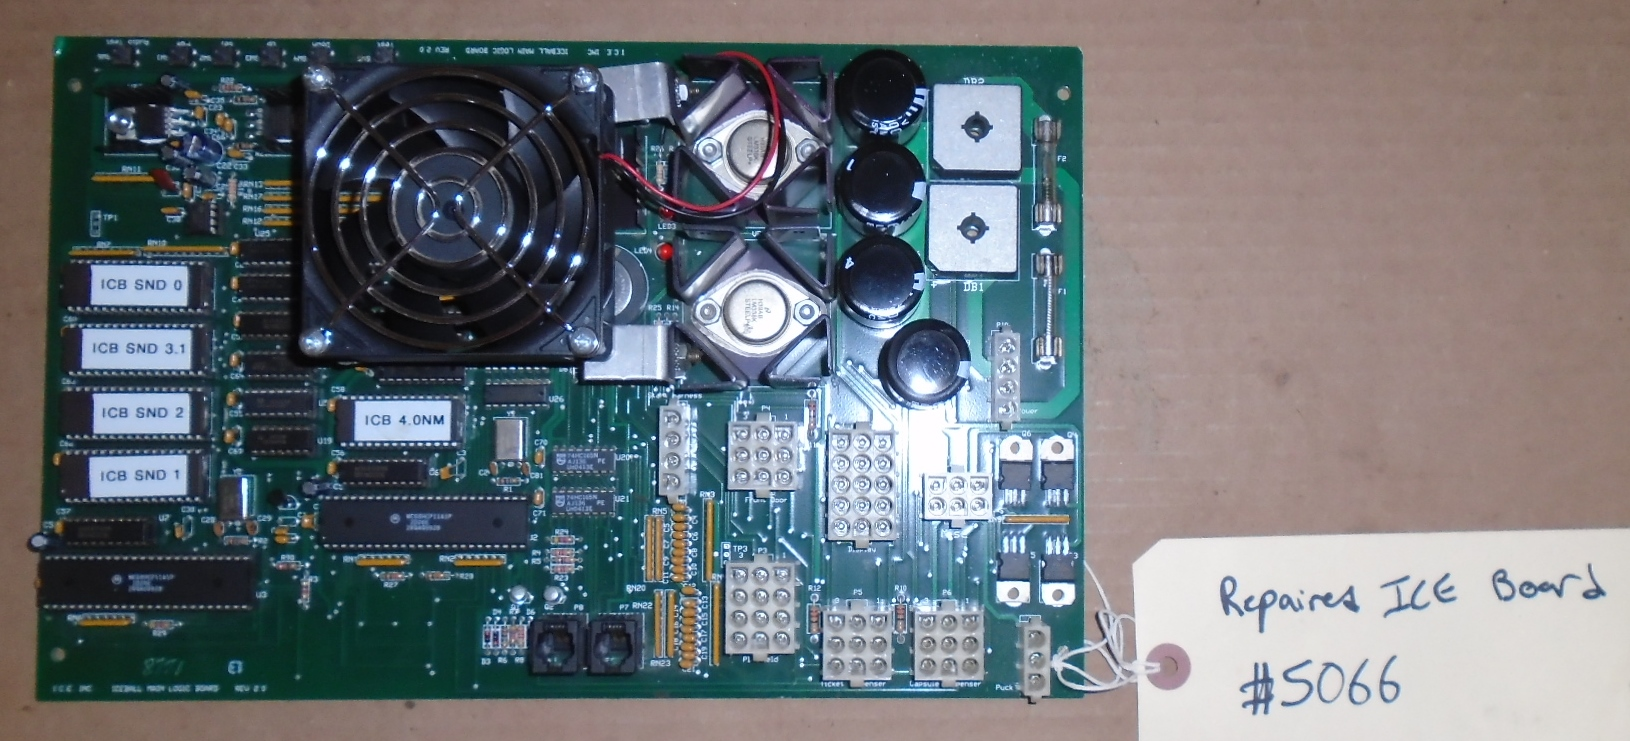 ICE Arcade Machine Game PCB Printed Circuit Board #5066 for sale